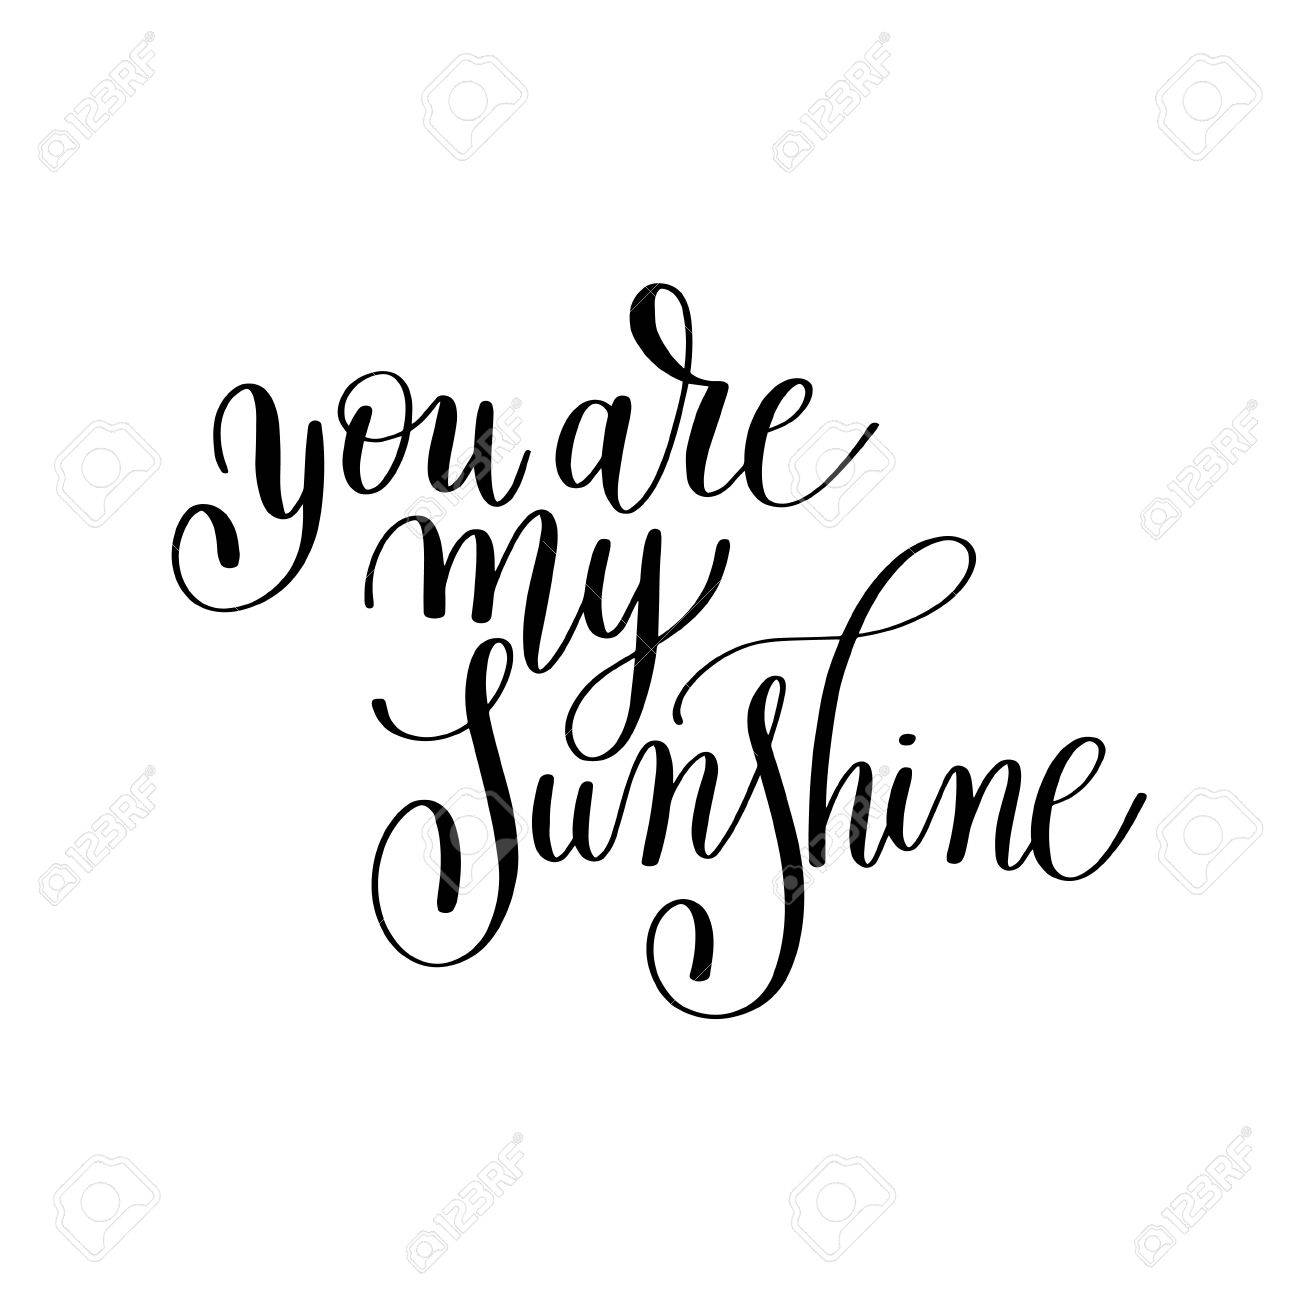 graphic about You Are My Sunshine Printable identified as yourself are my sunlight handwritten lettering quotation around appreciate in direction of..